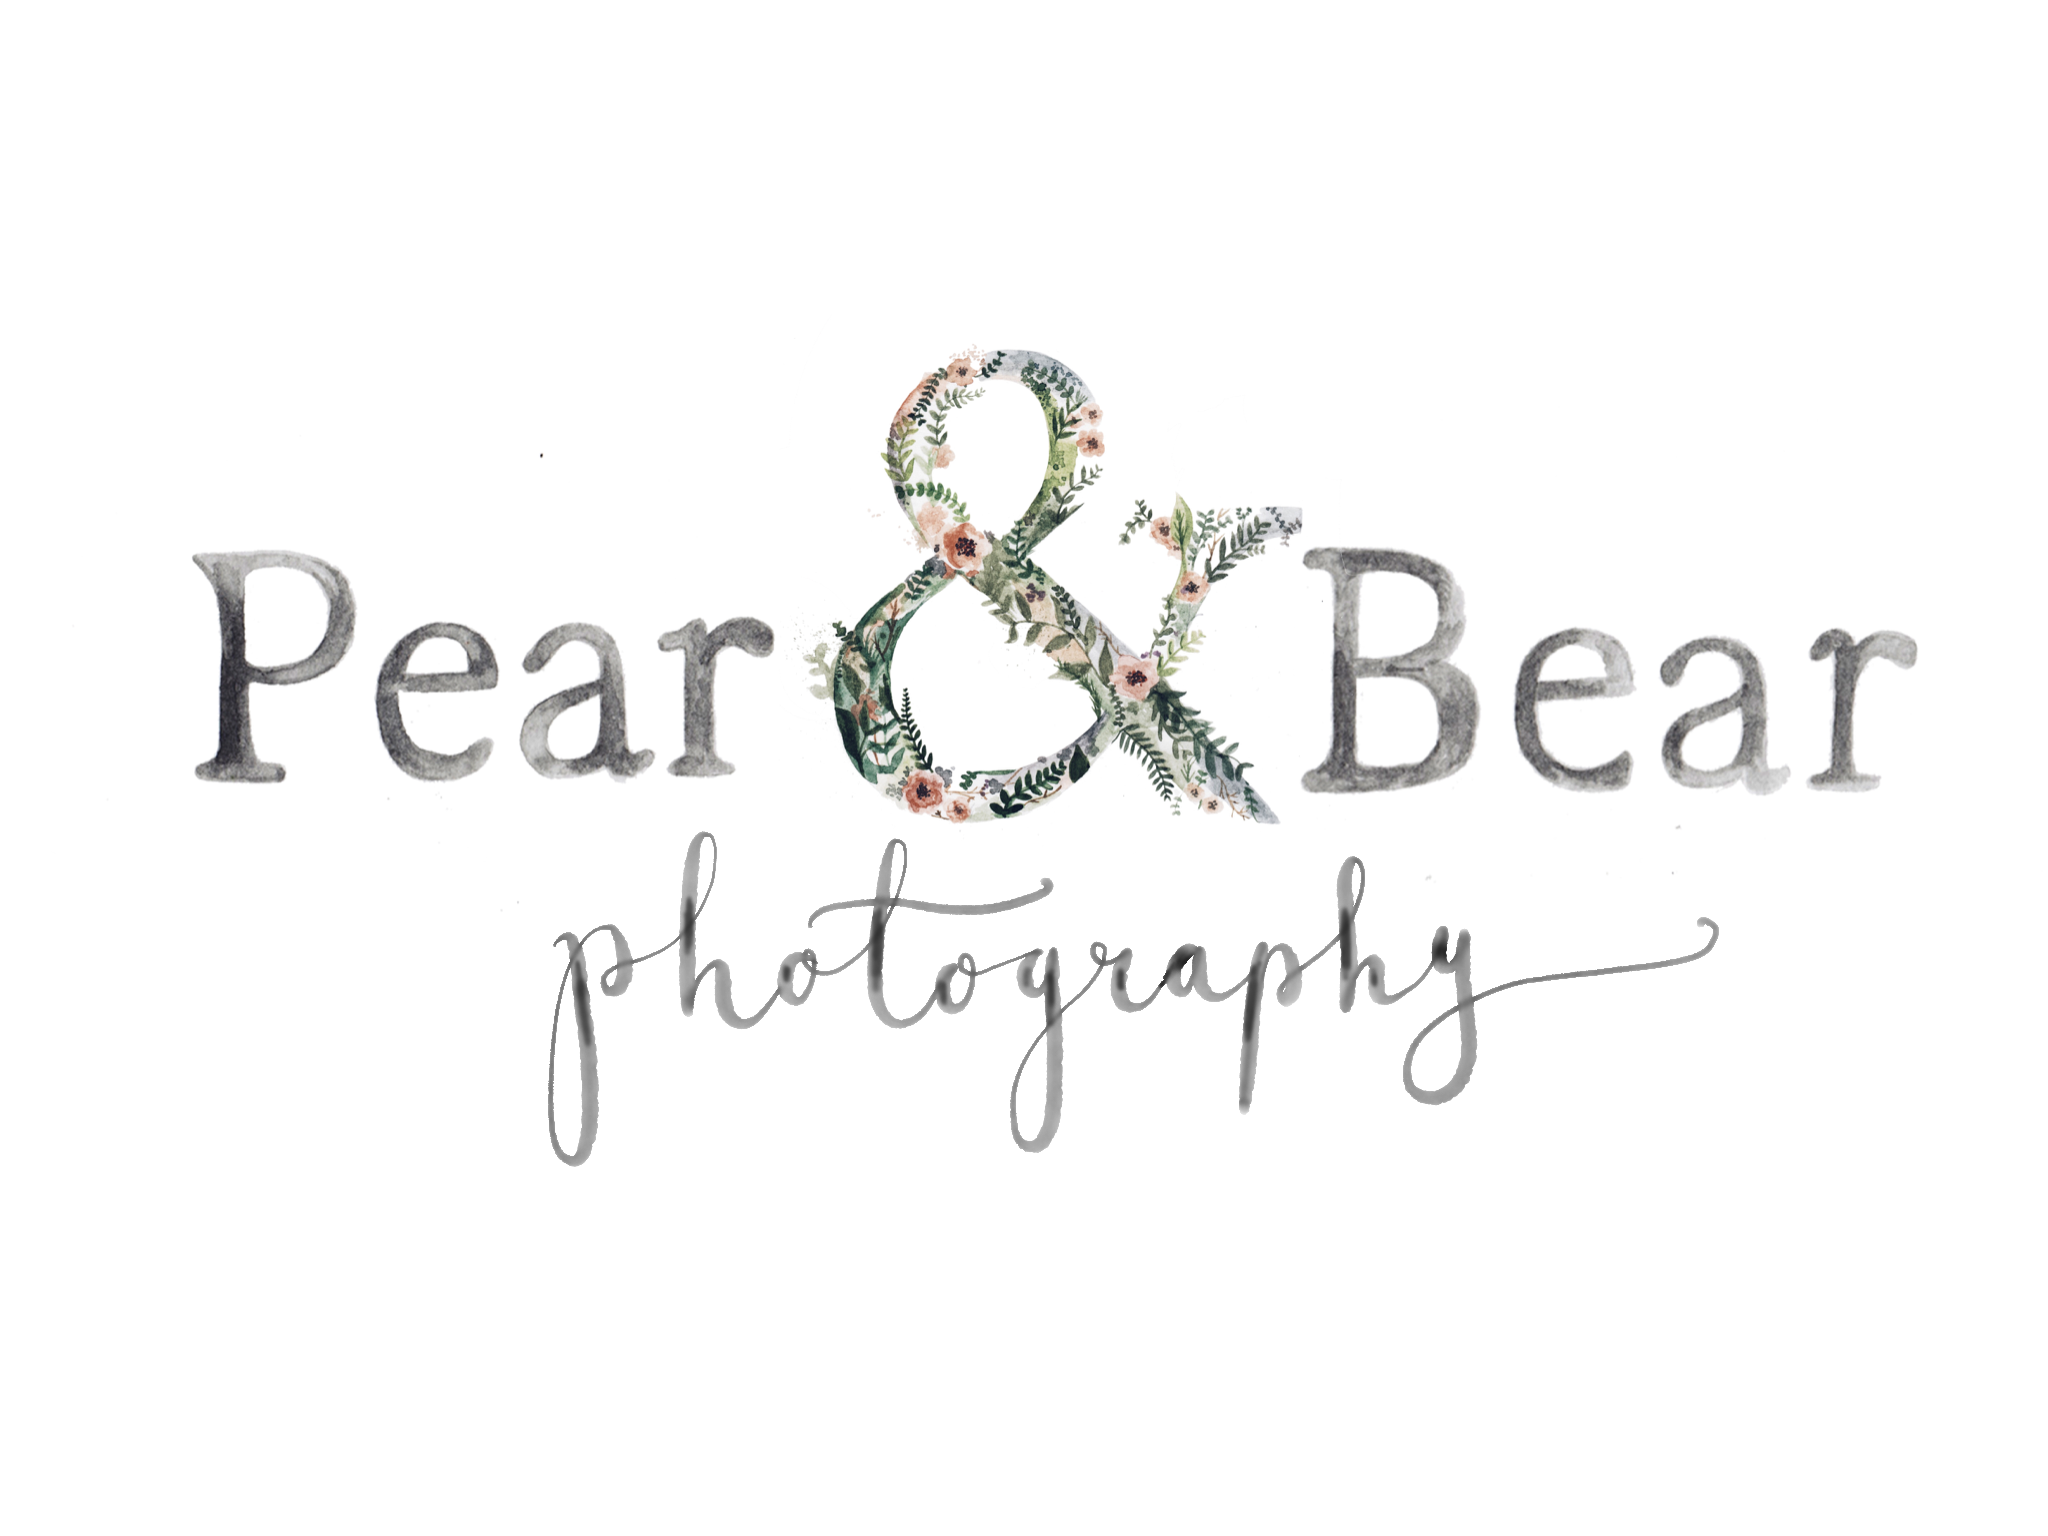 Pear & Bear Photography